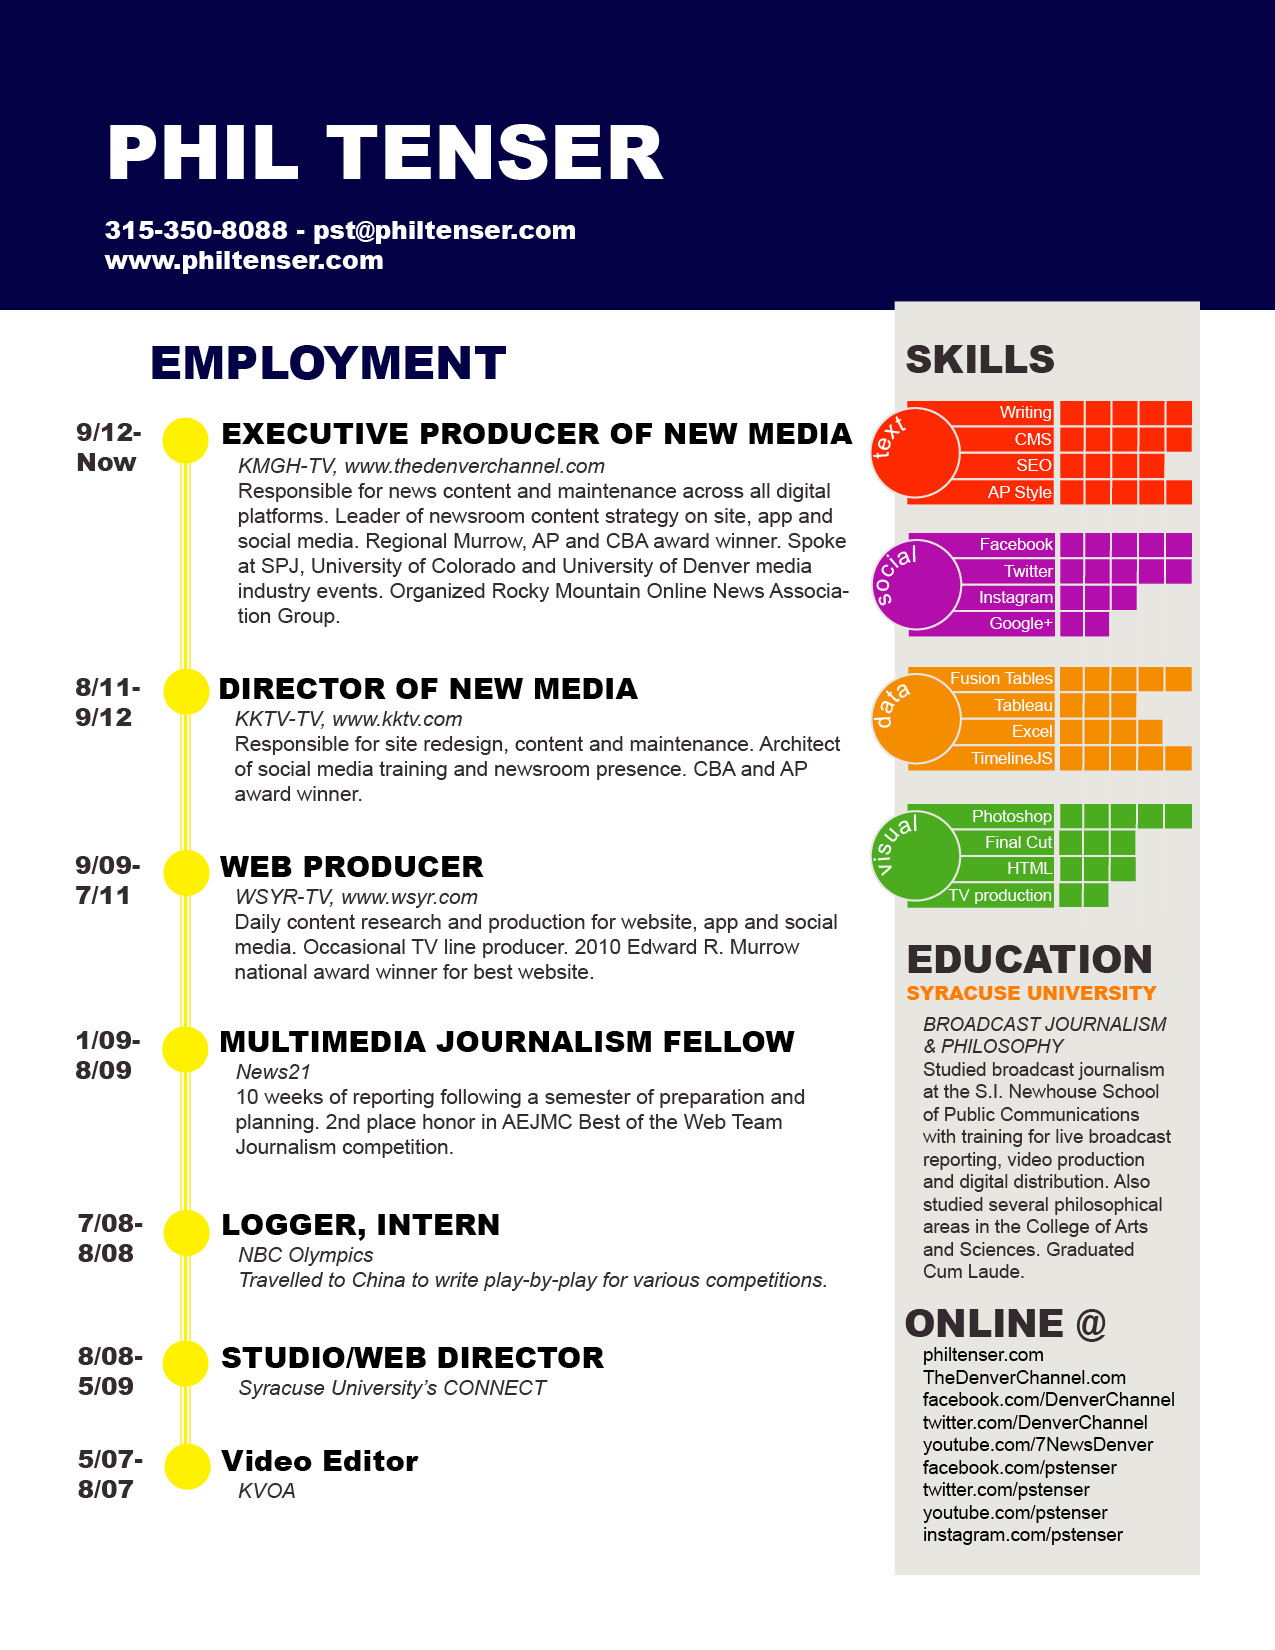 Resume Format New 2015 Download Resume Format Write The Best Resume Phil Tenser Digital News Content Producer